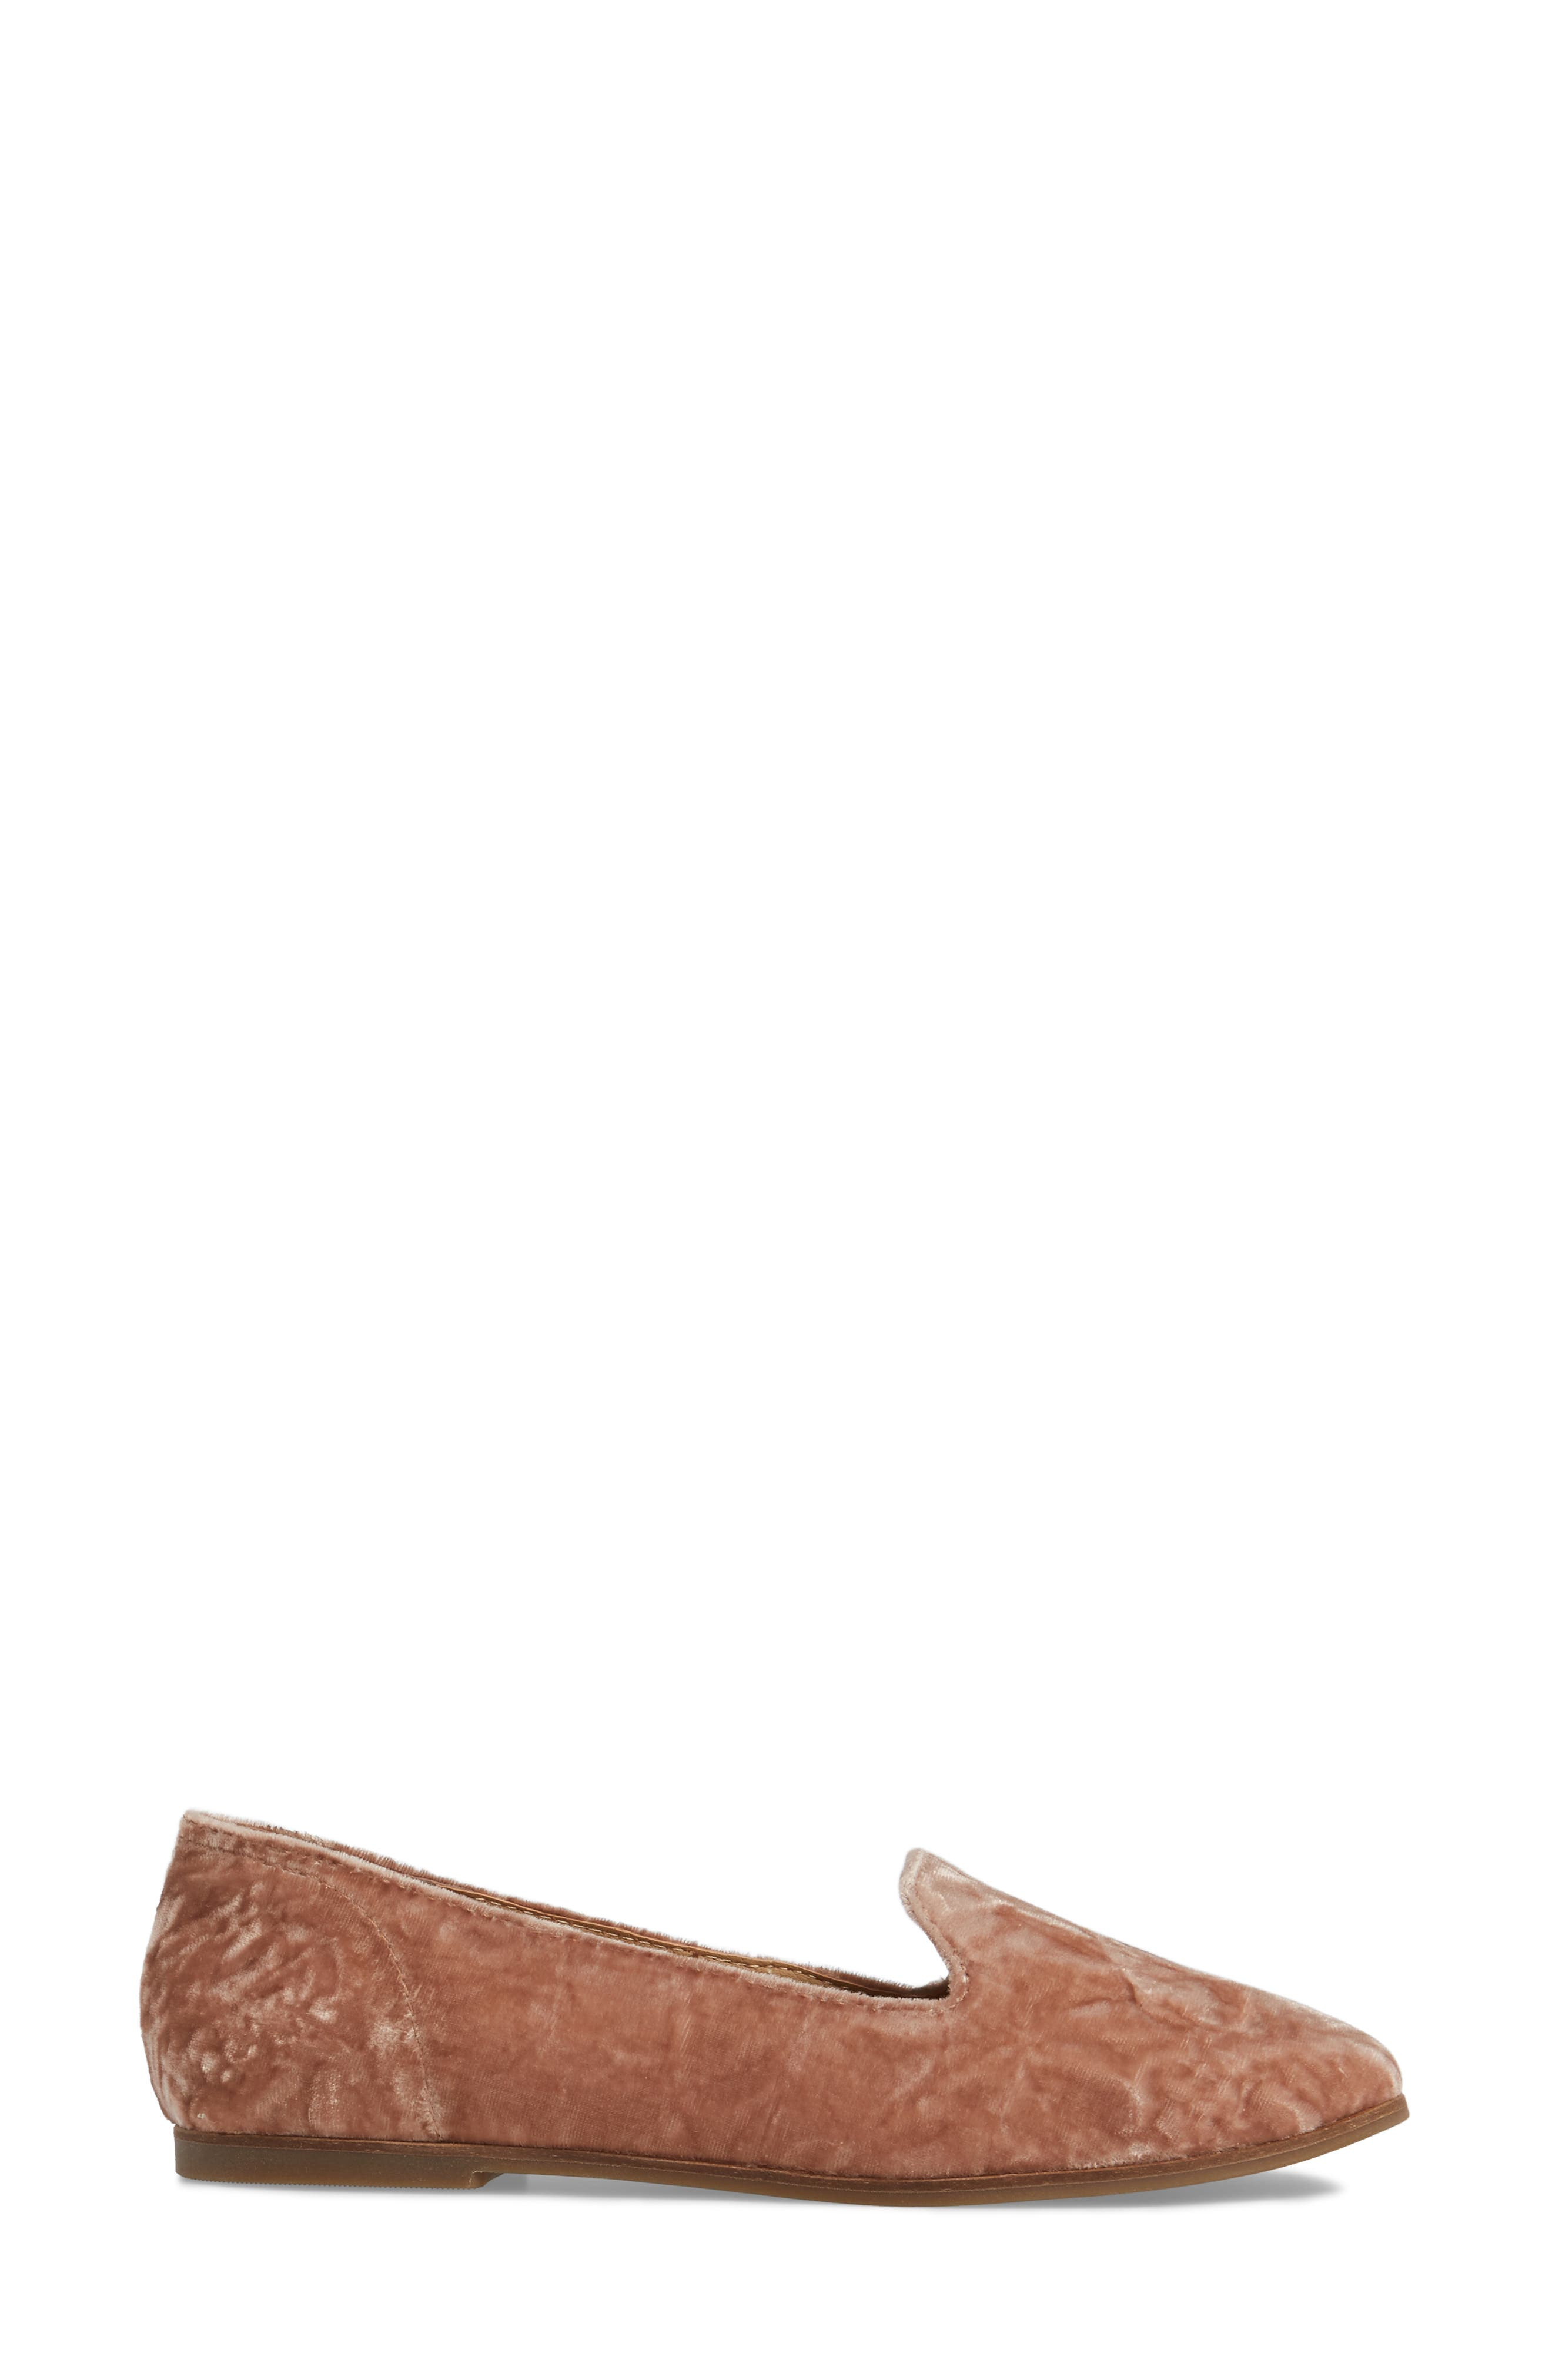 Alternate Image 3  - Lucky Brand Carlyn Loafer Flat (Women)